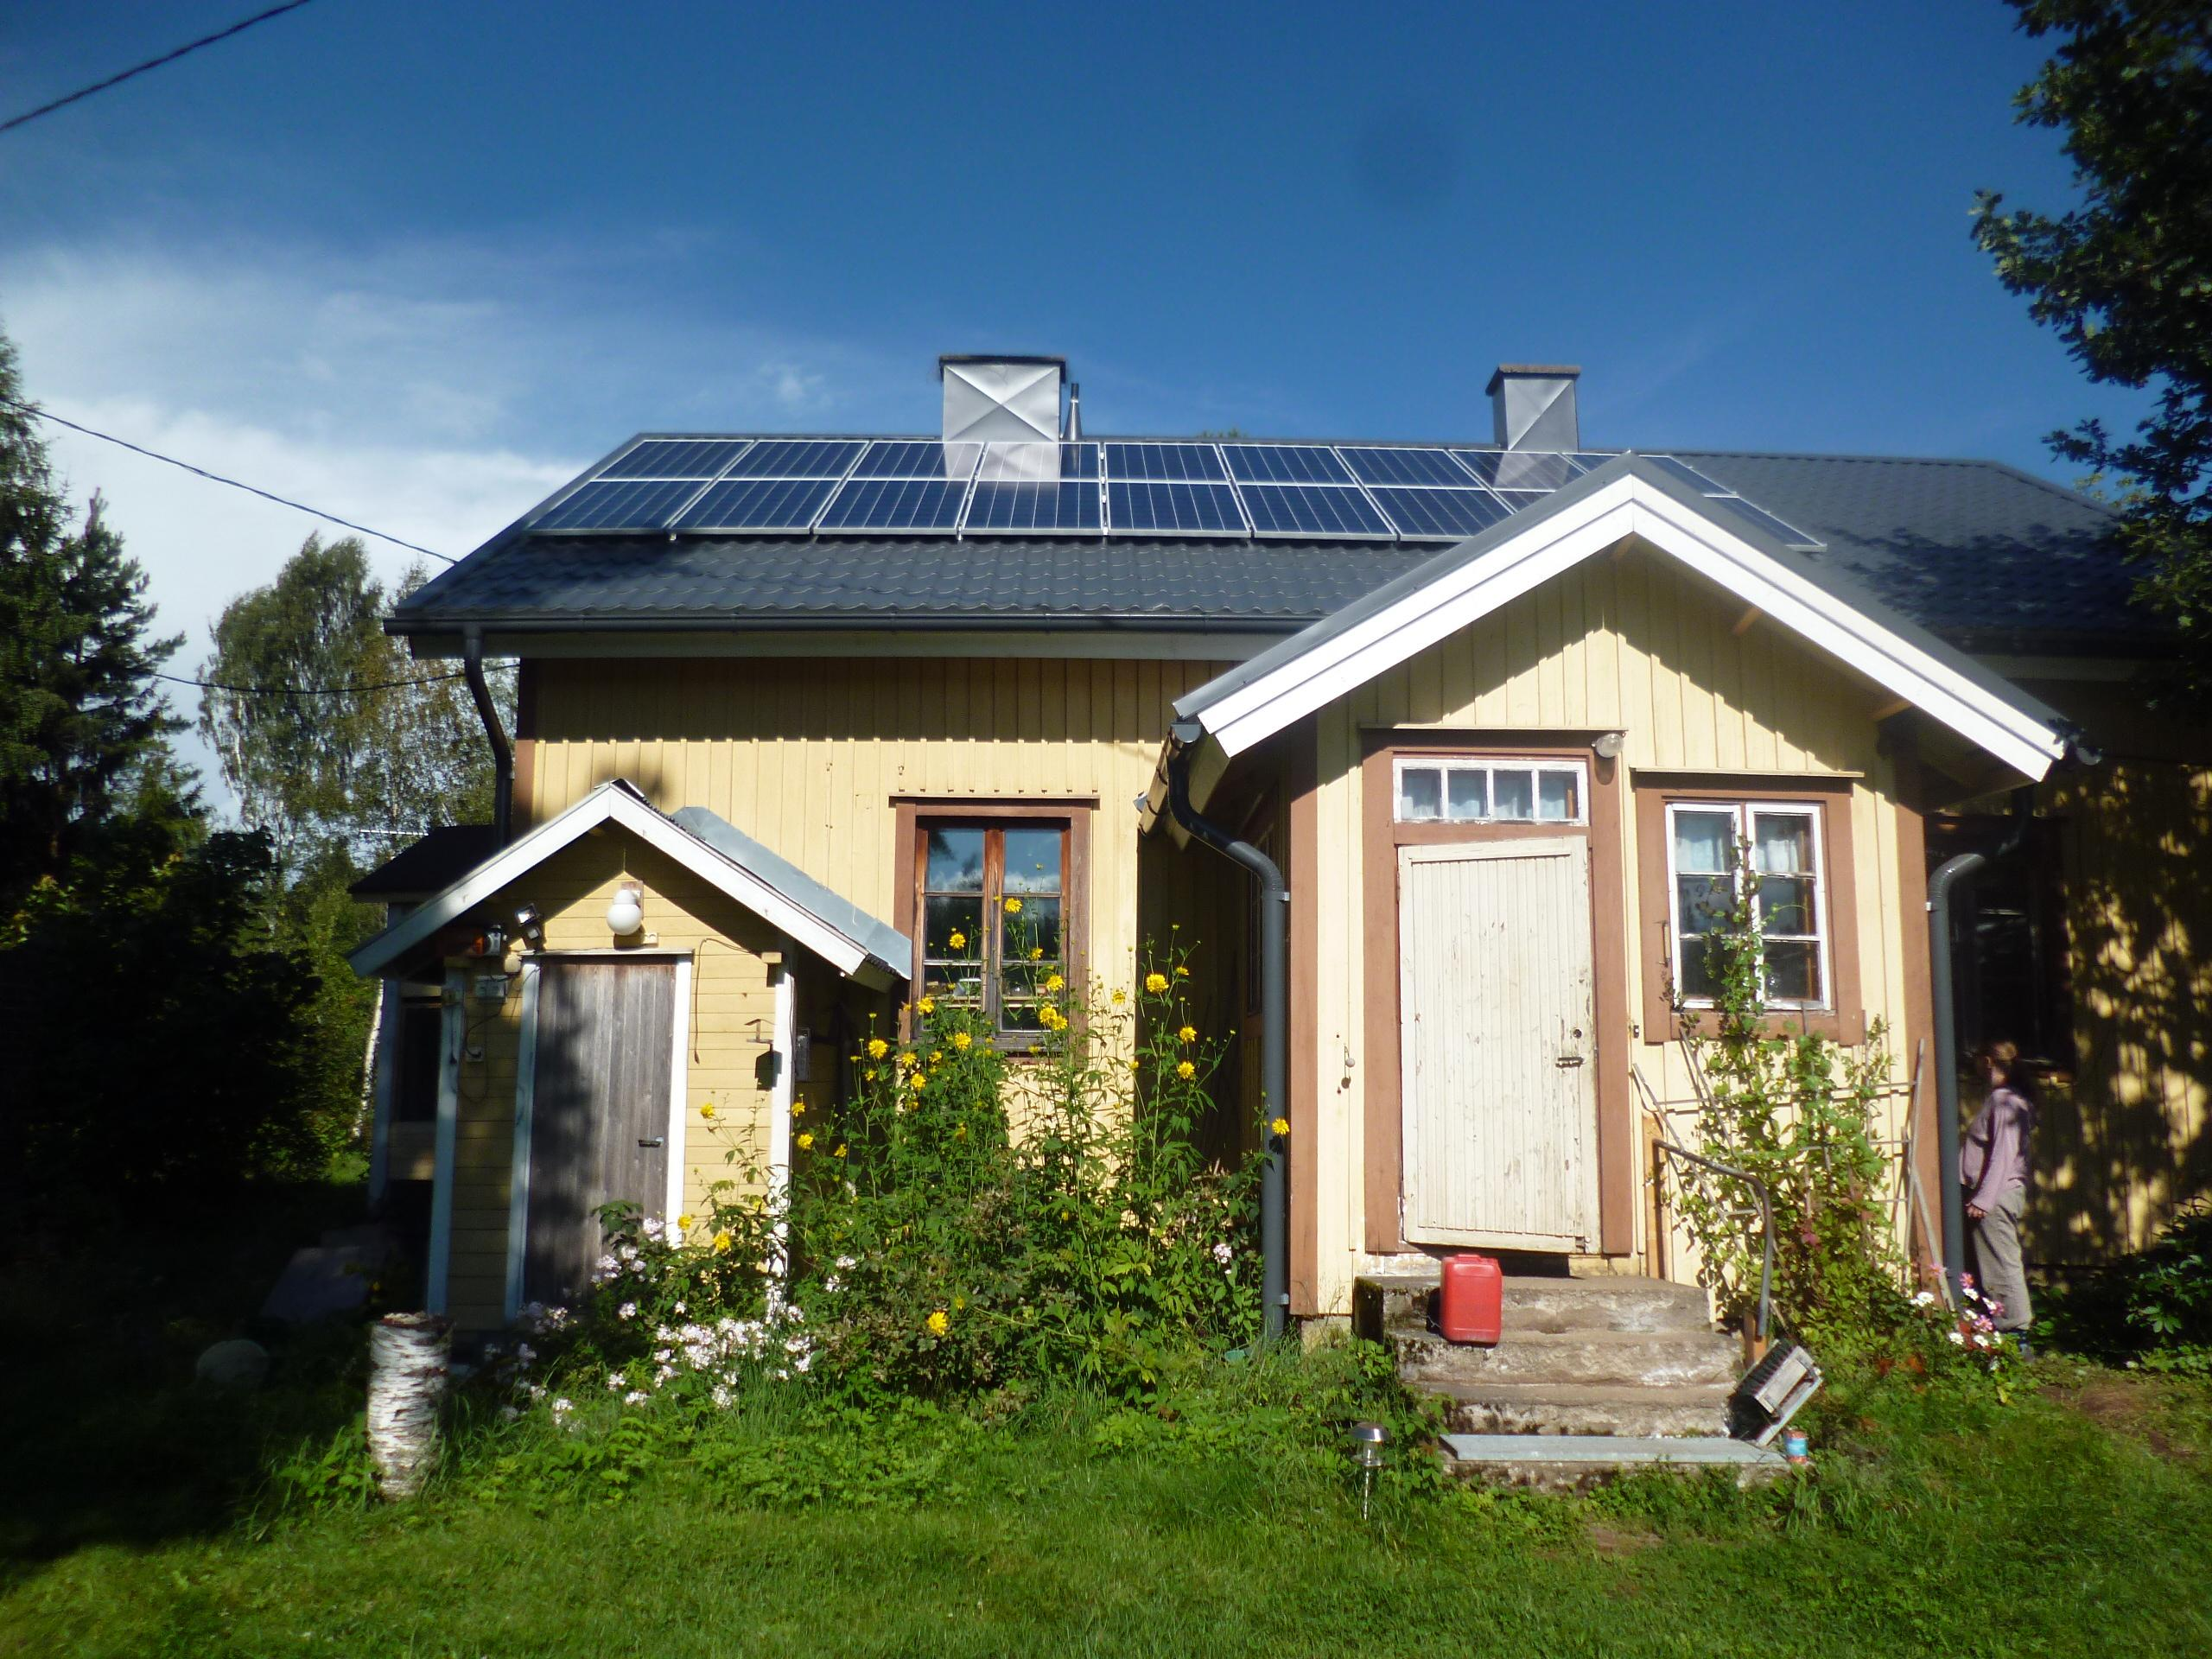 Our PV system